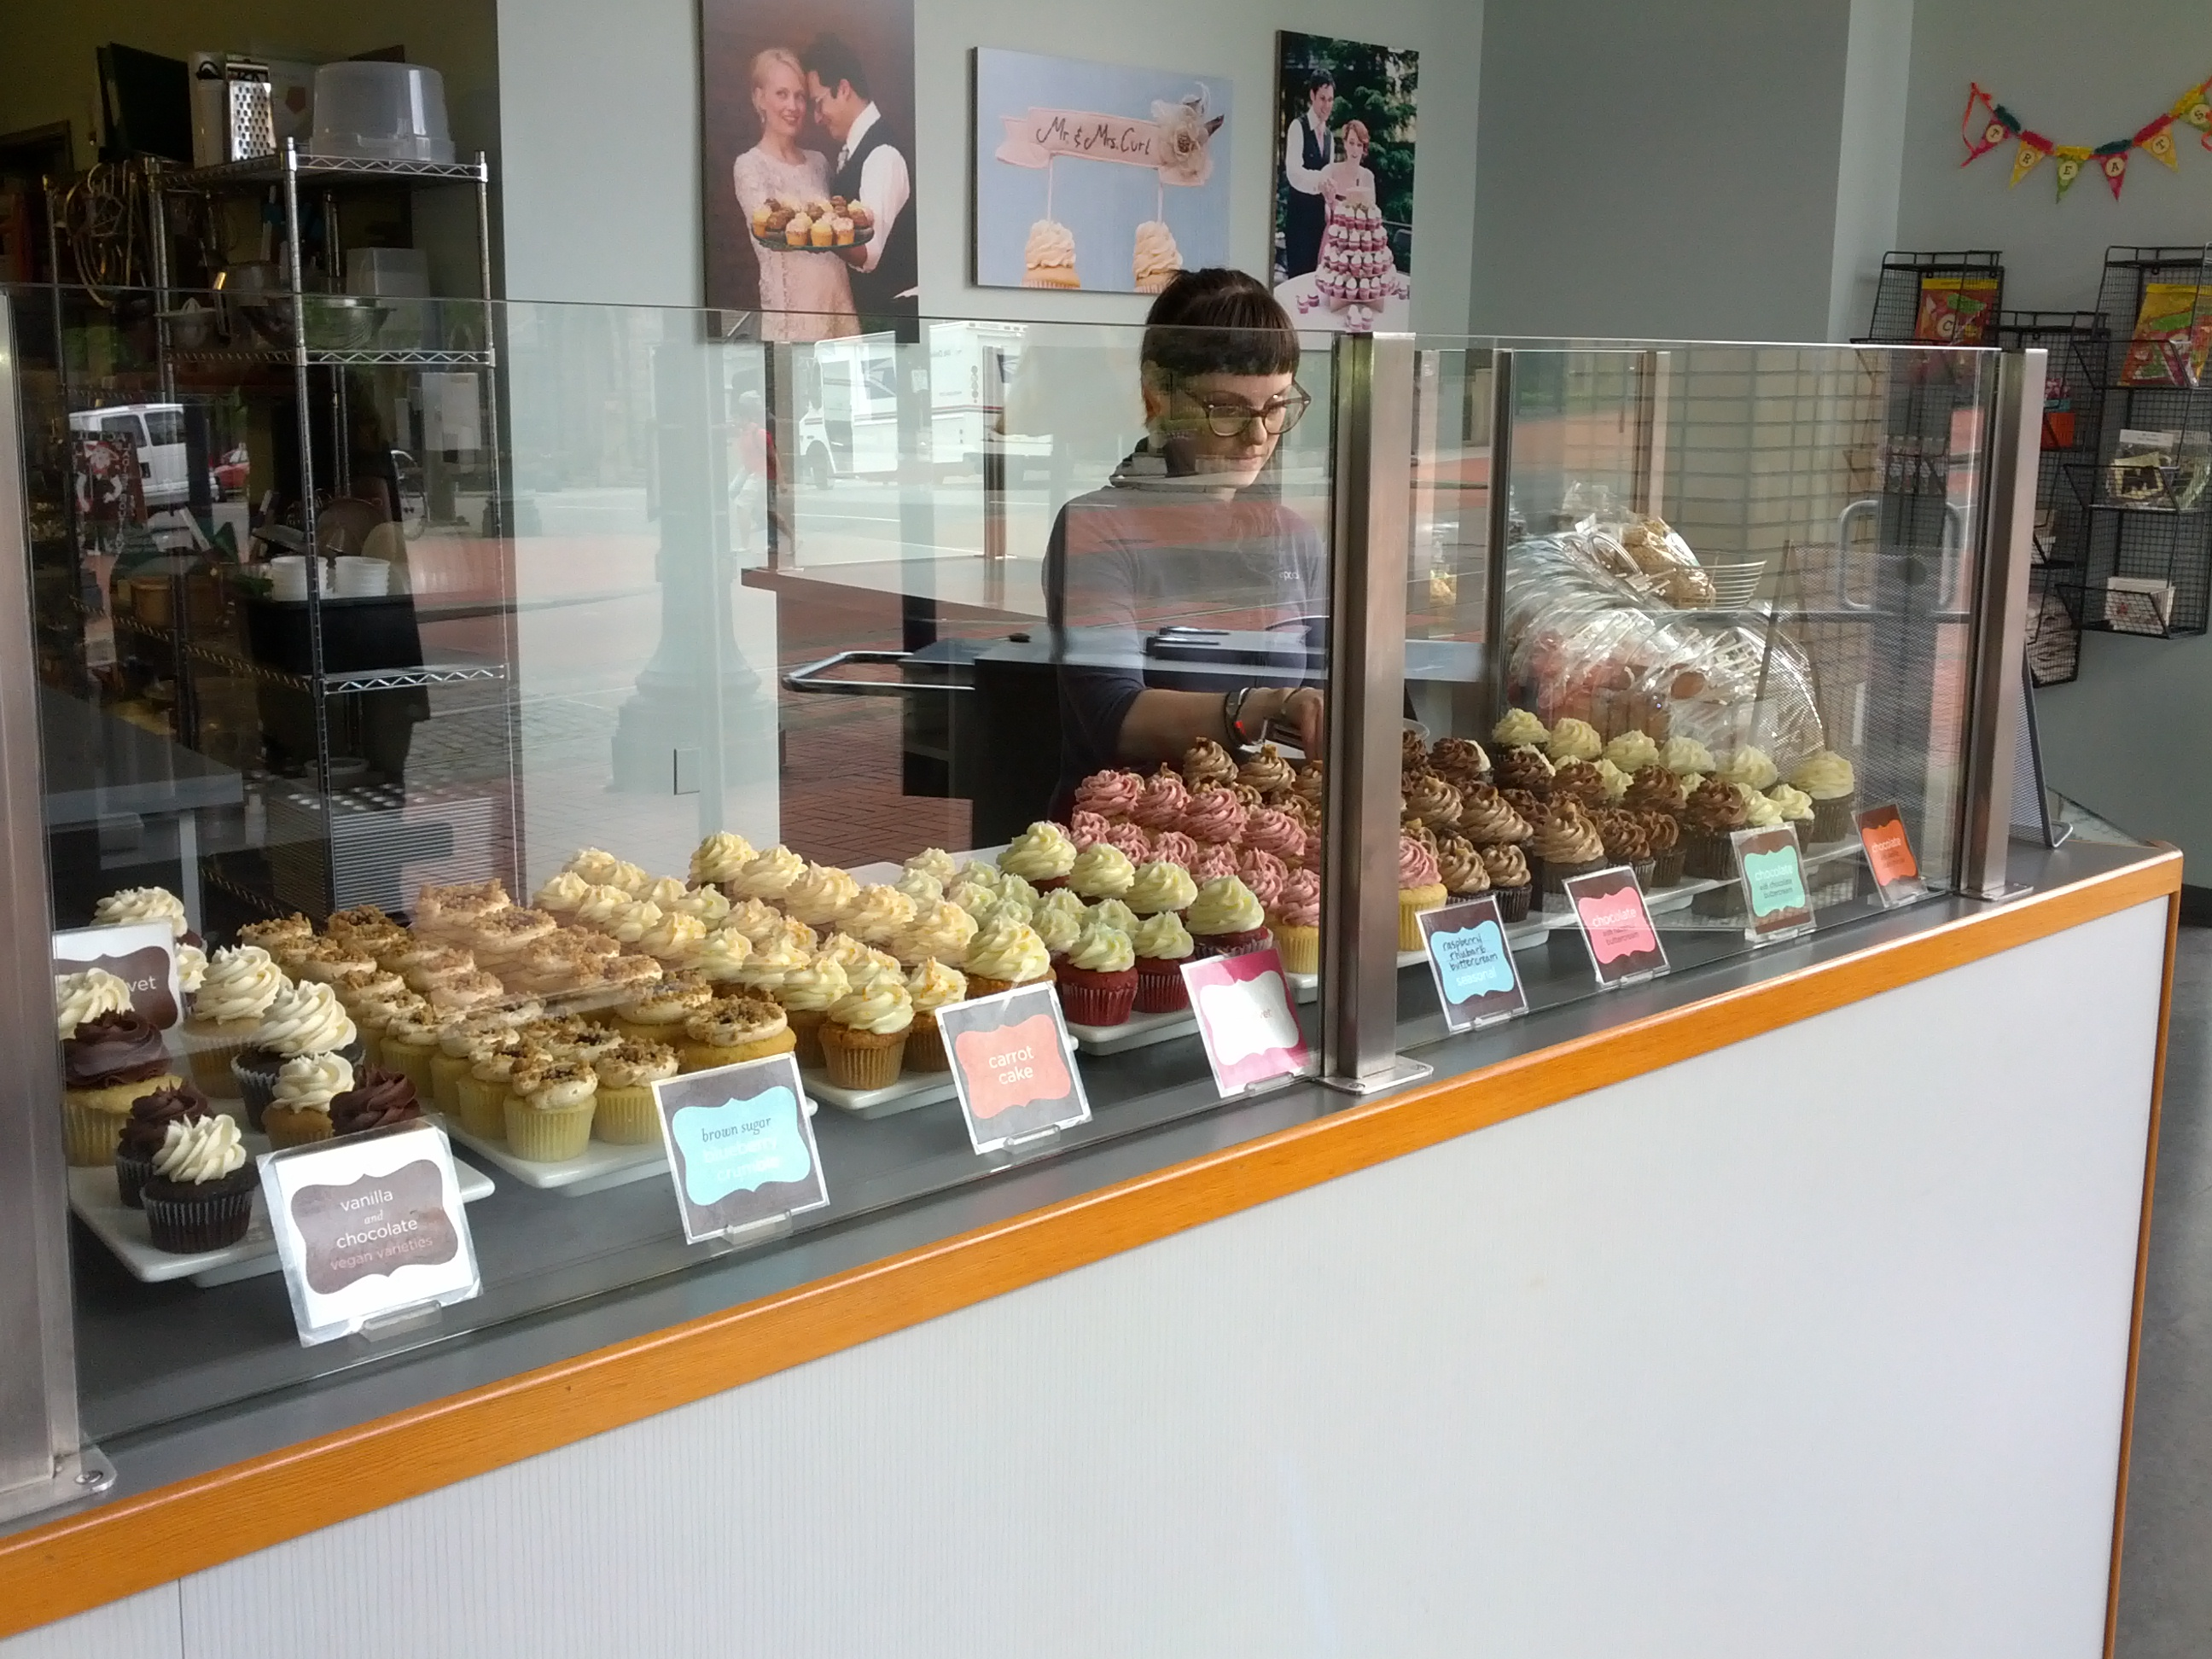 st cupcake counter